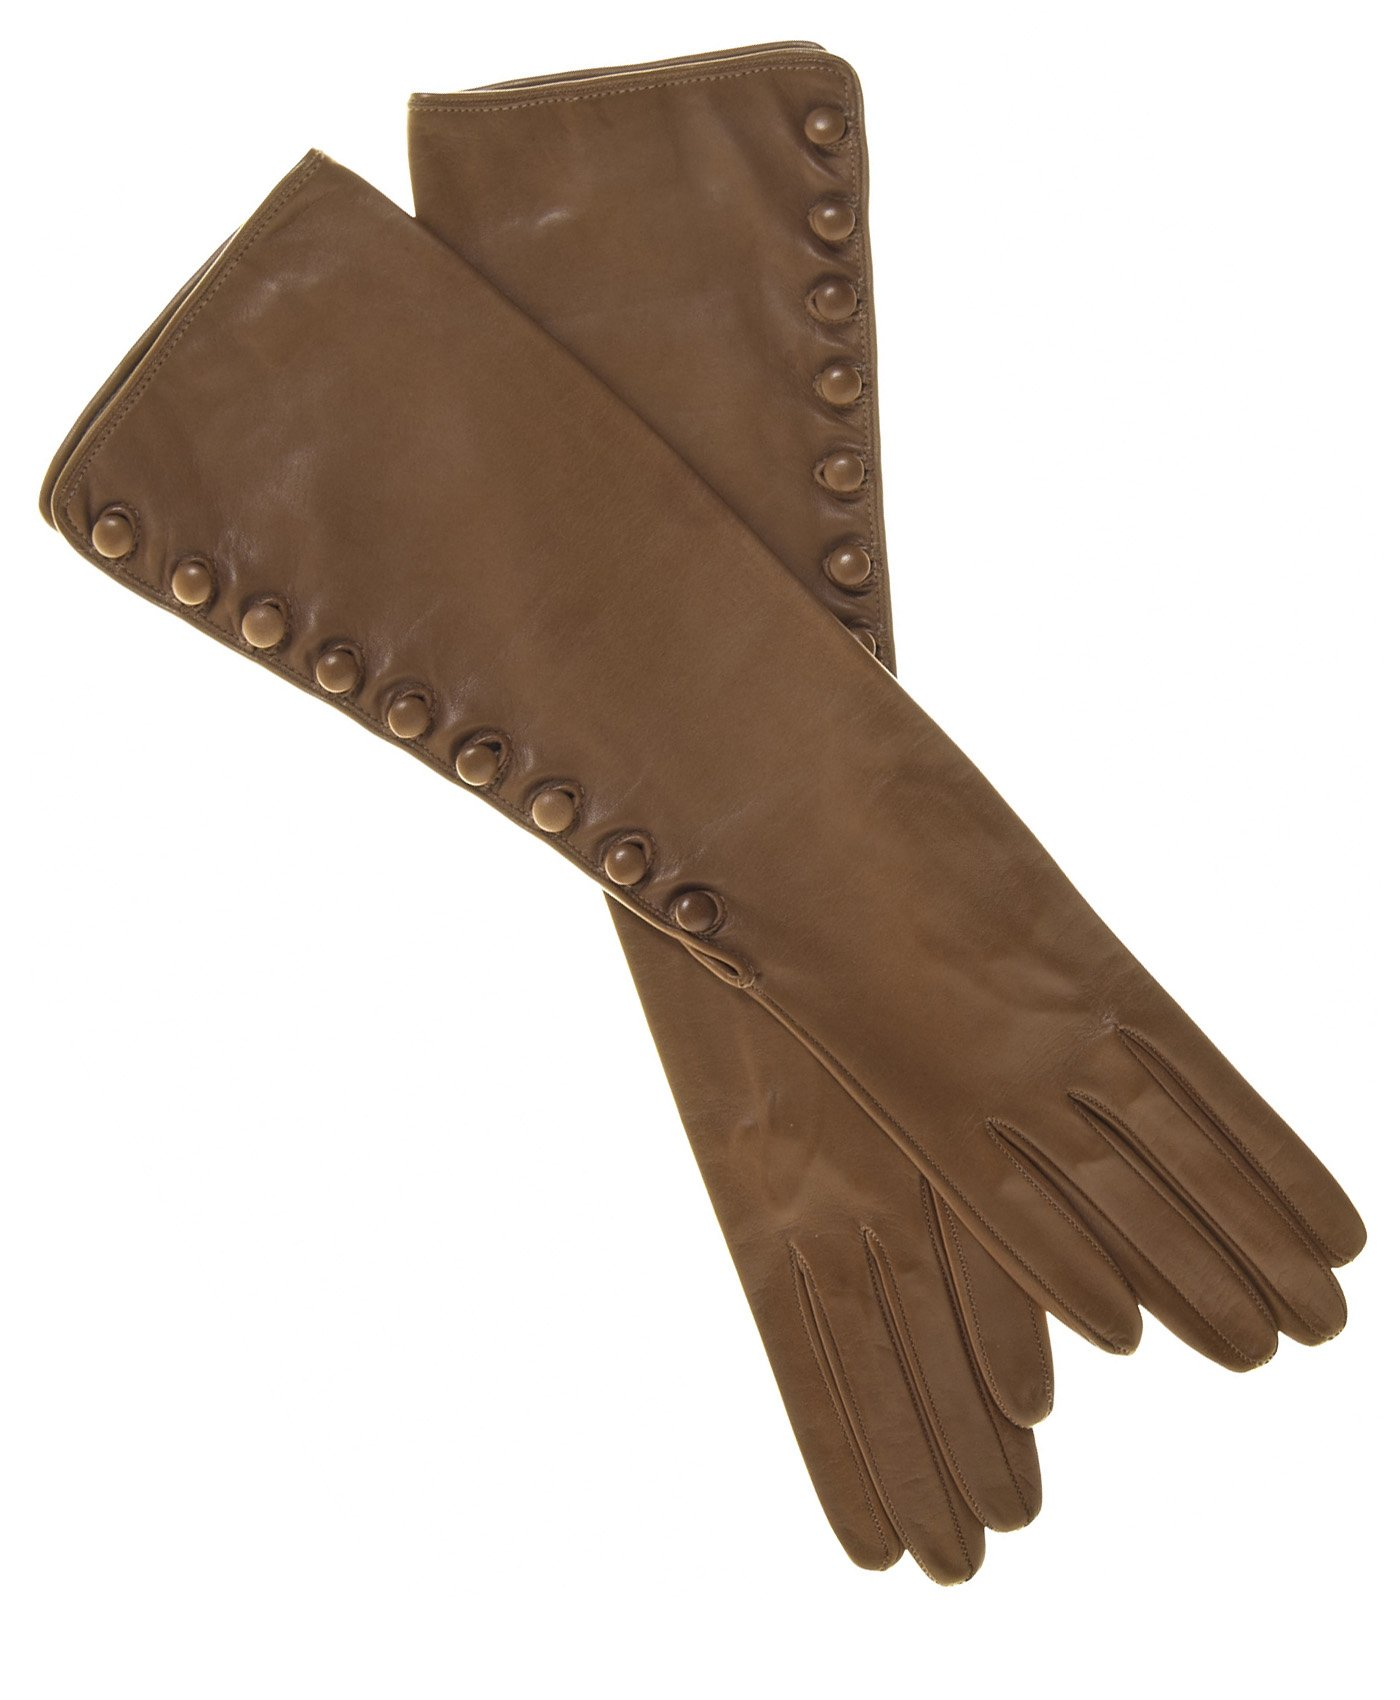 Fratelli Orsini Women's Elbow Length Silk Lined Lambskin Gloves With Buttons Size 6 1/2 Color Camel